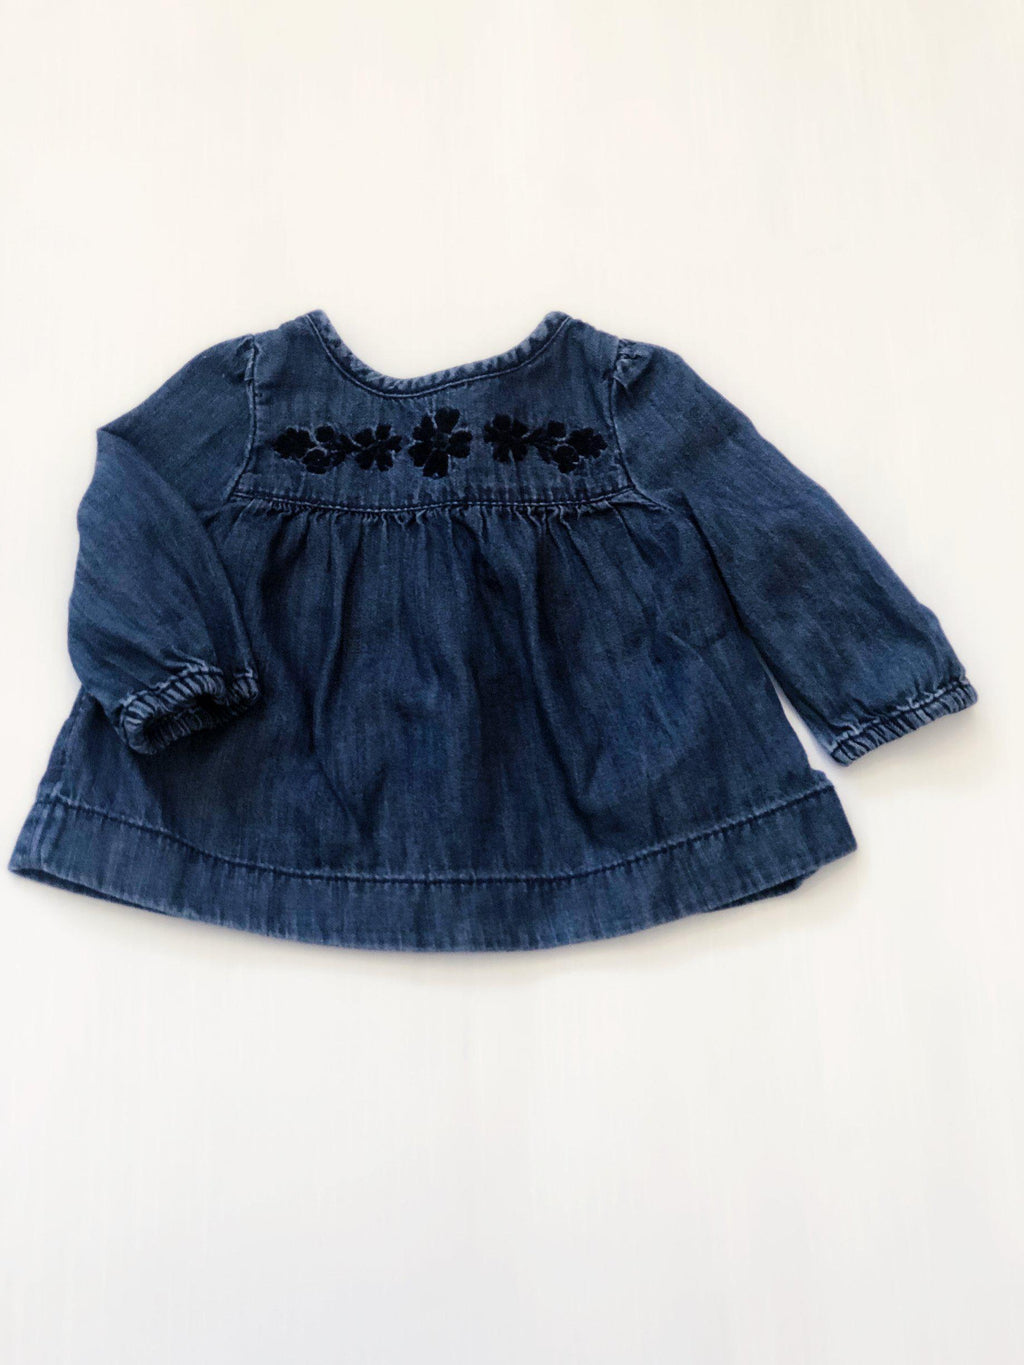 Gap denim embroidered top 0-3m